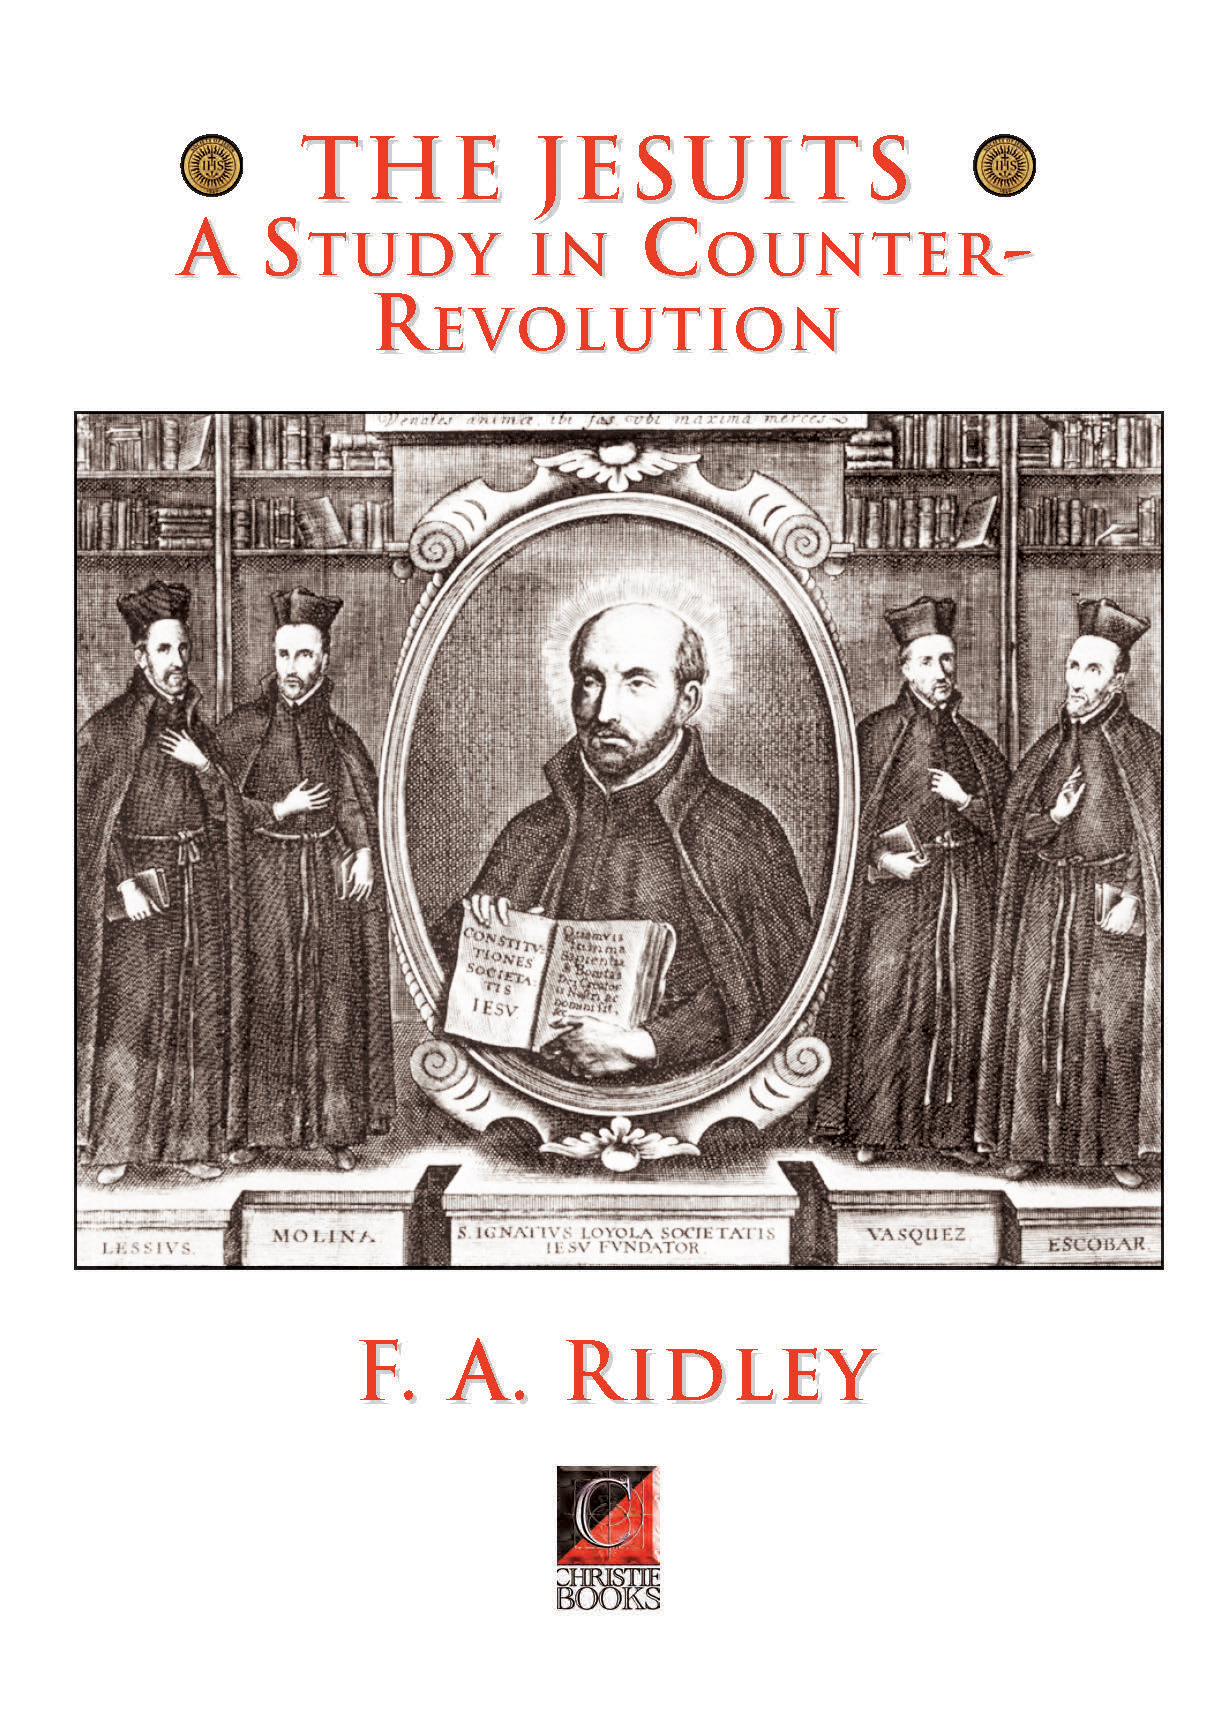 THE JESUITS. A Study in Counter-Revolution — F. A. Ridley